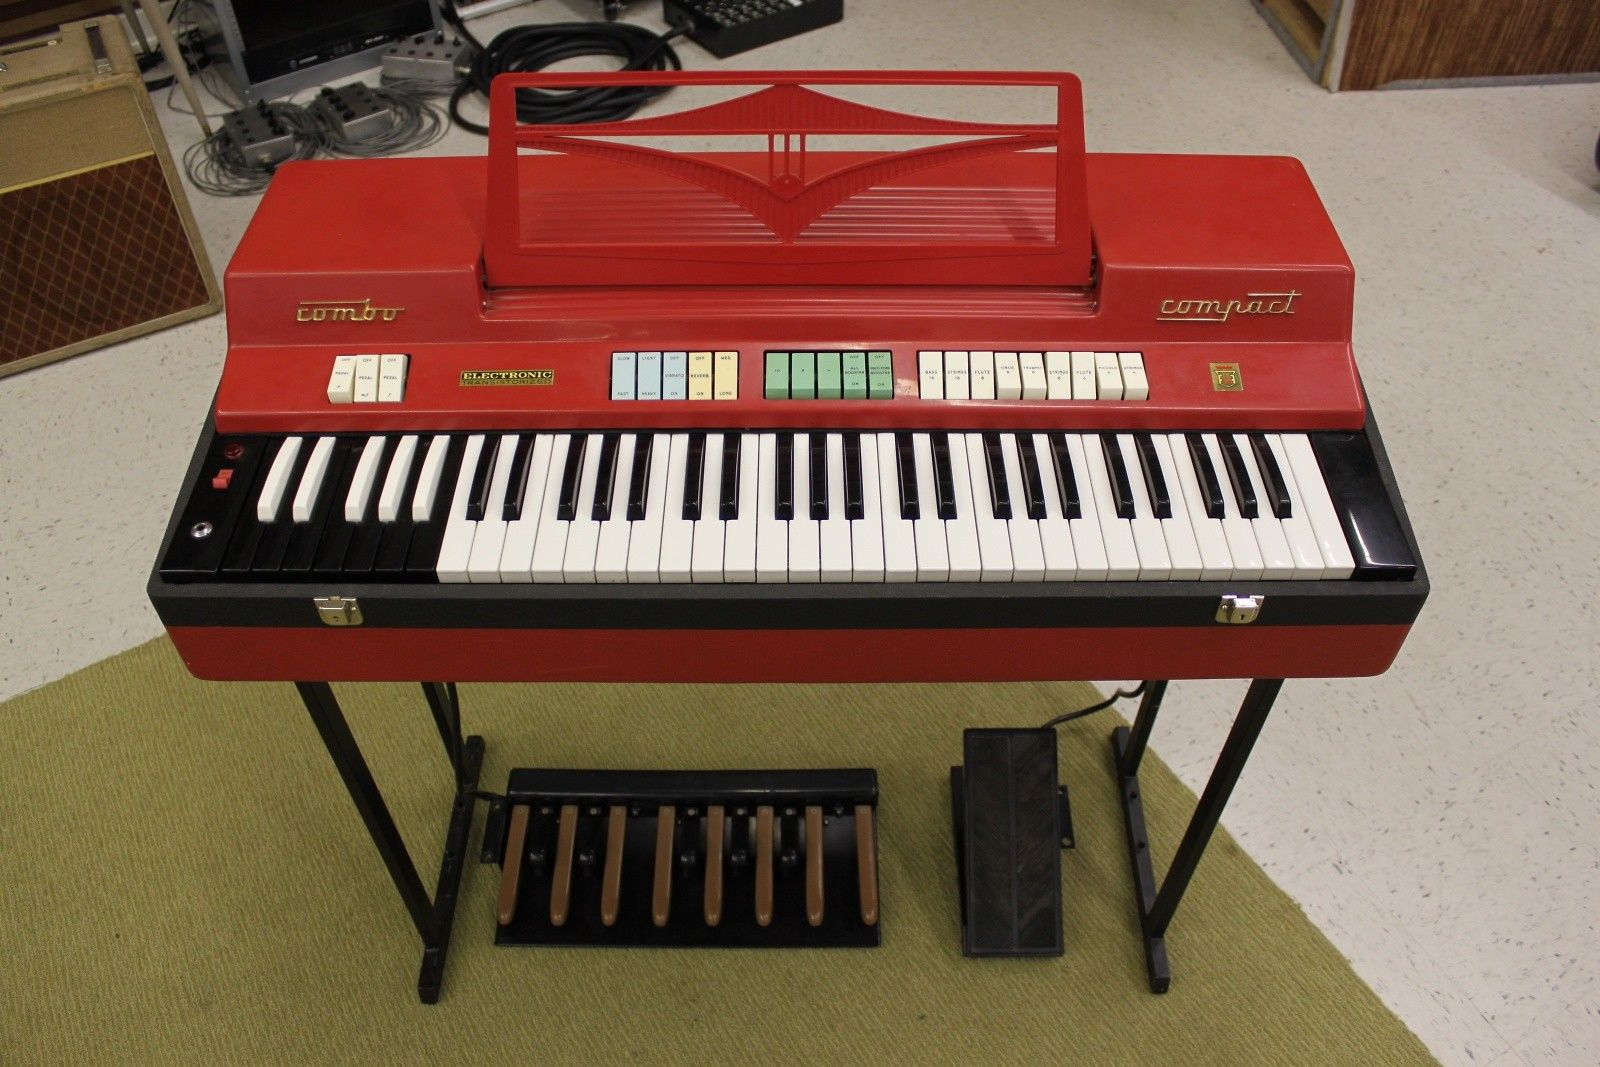 Farfisa Combo Compact Organ | Reverb | Hey Danny, buy this for me